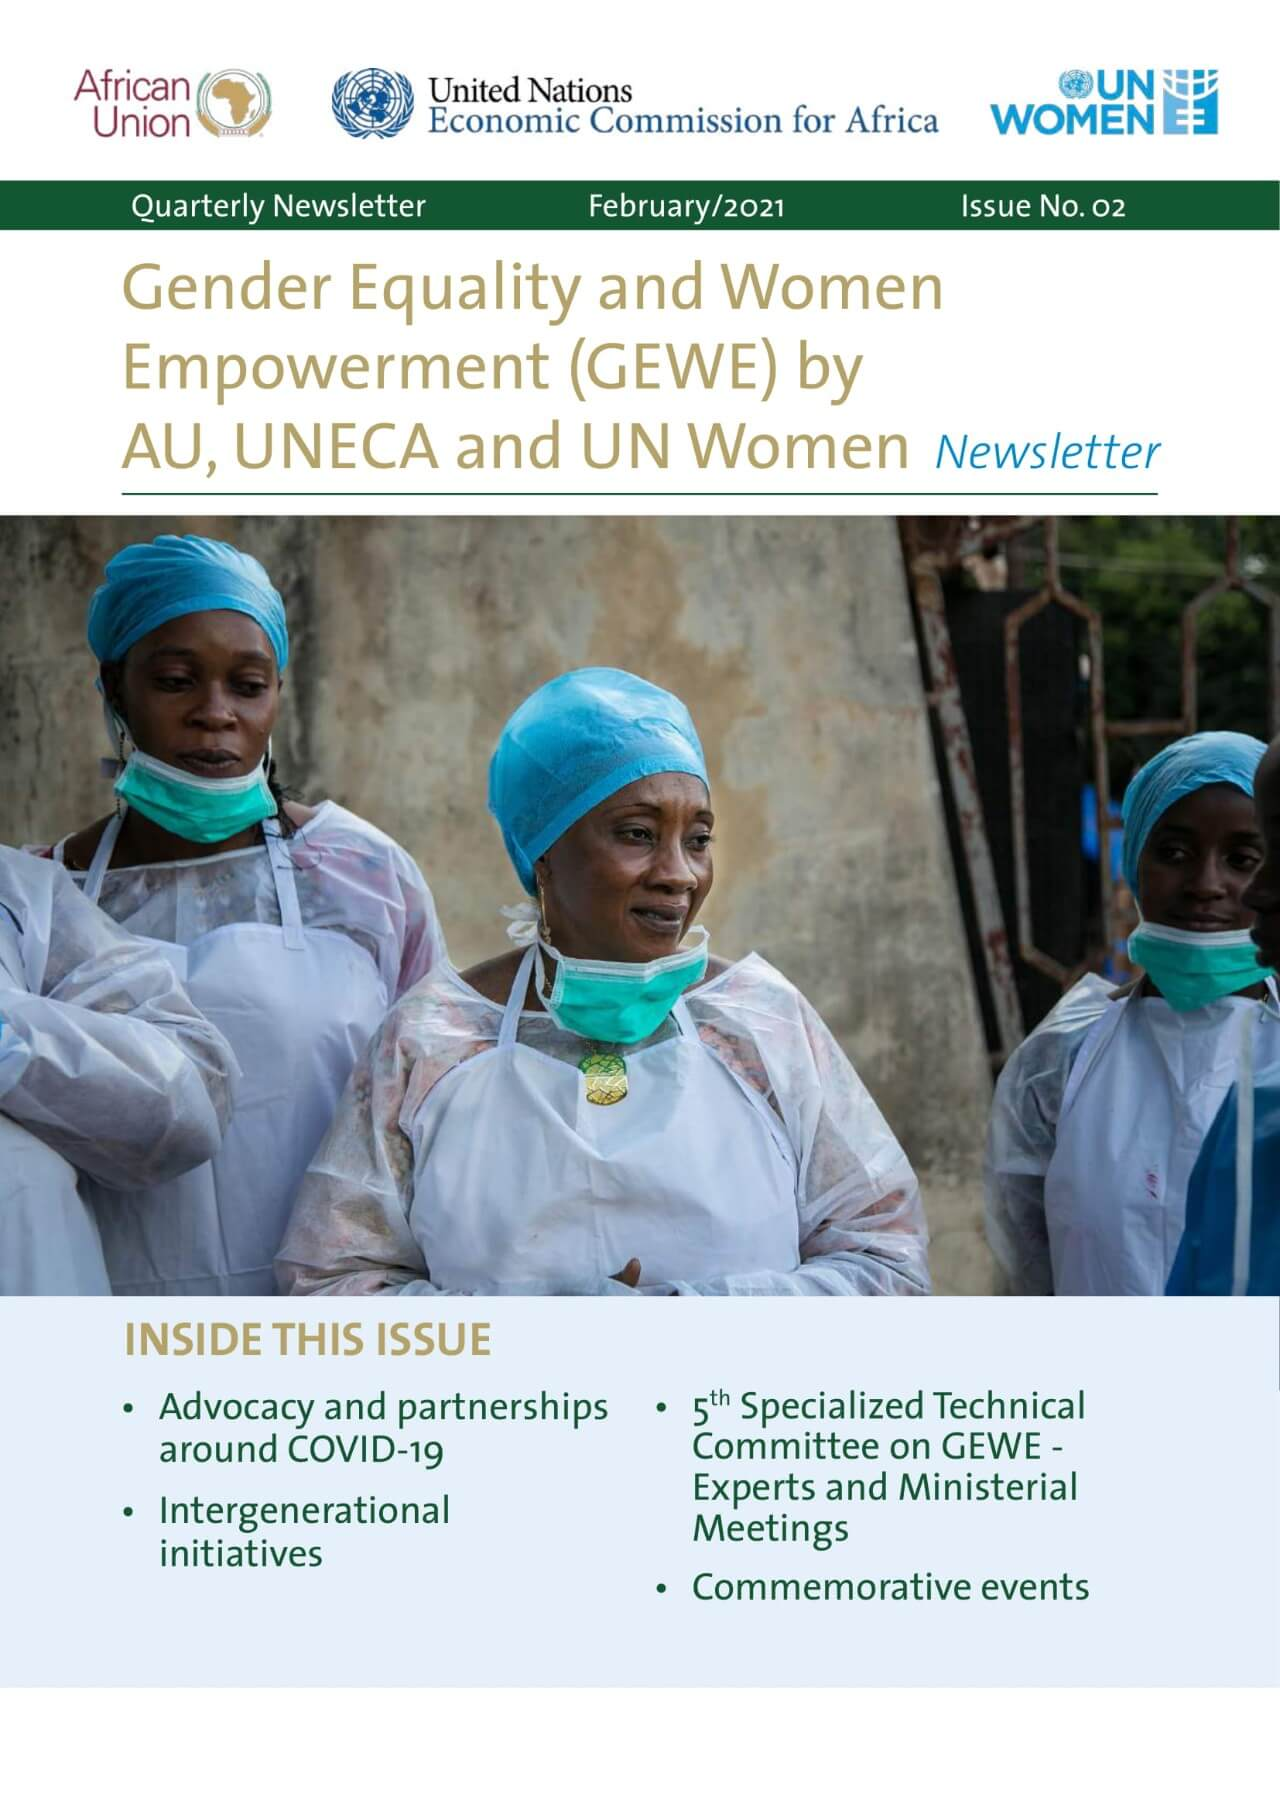 Gender Equality and Women Empowerment by AU UNECA and UN Women